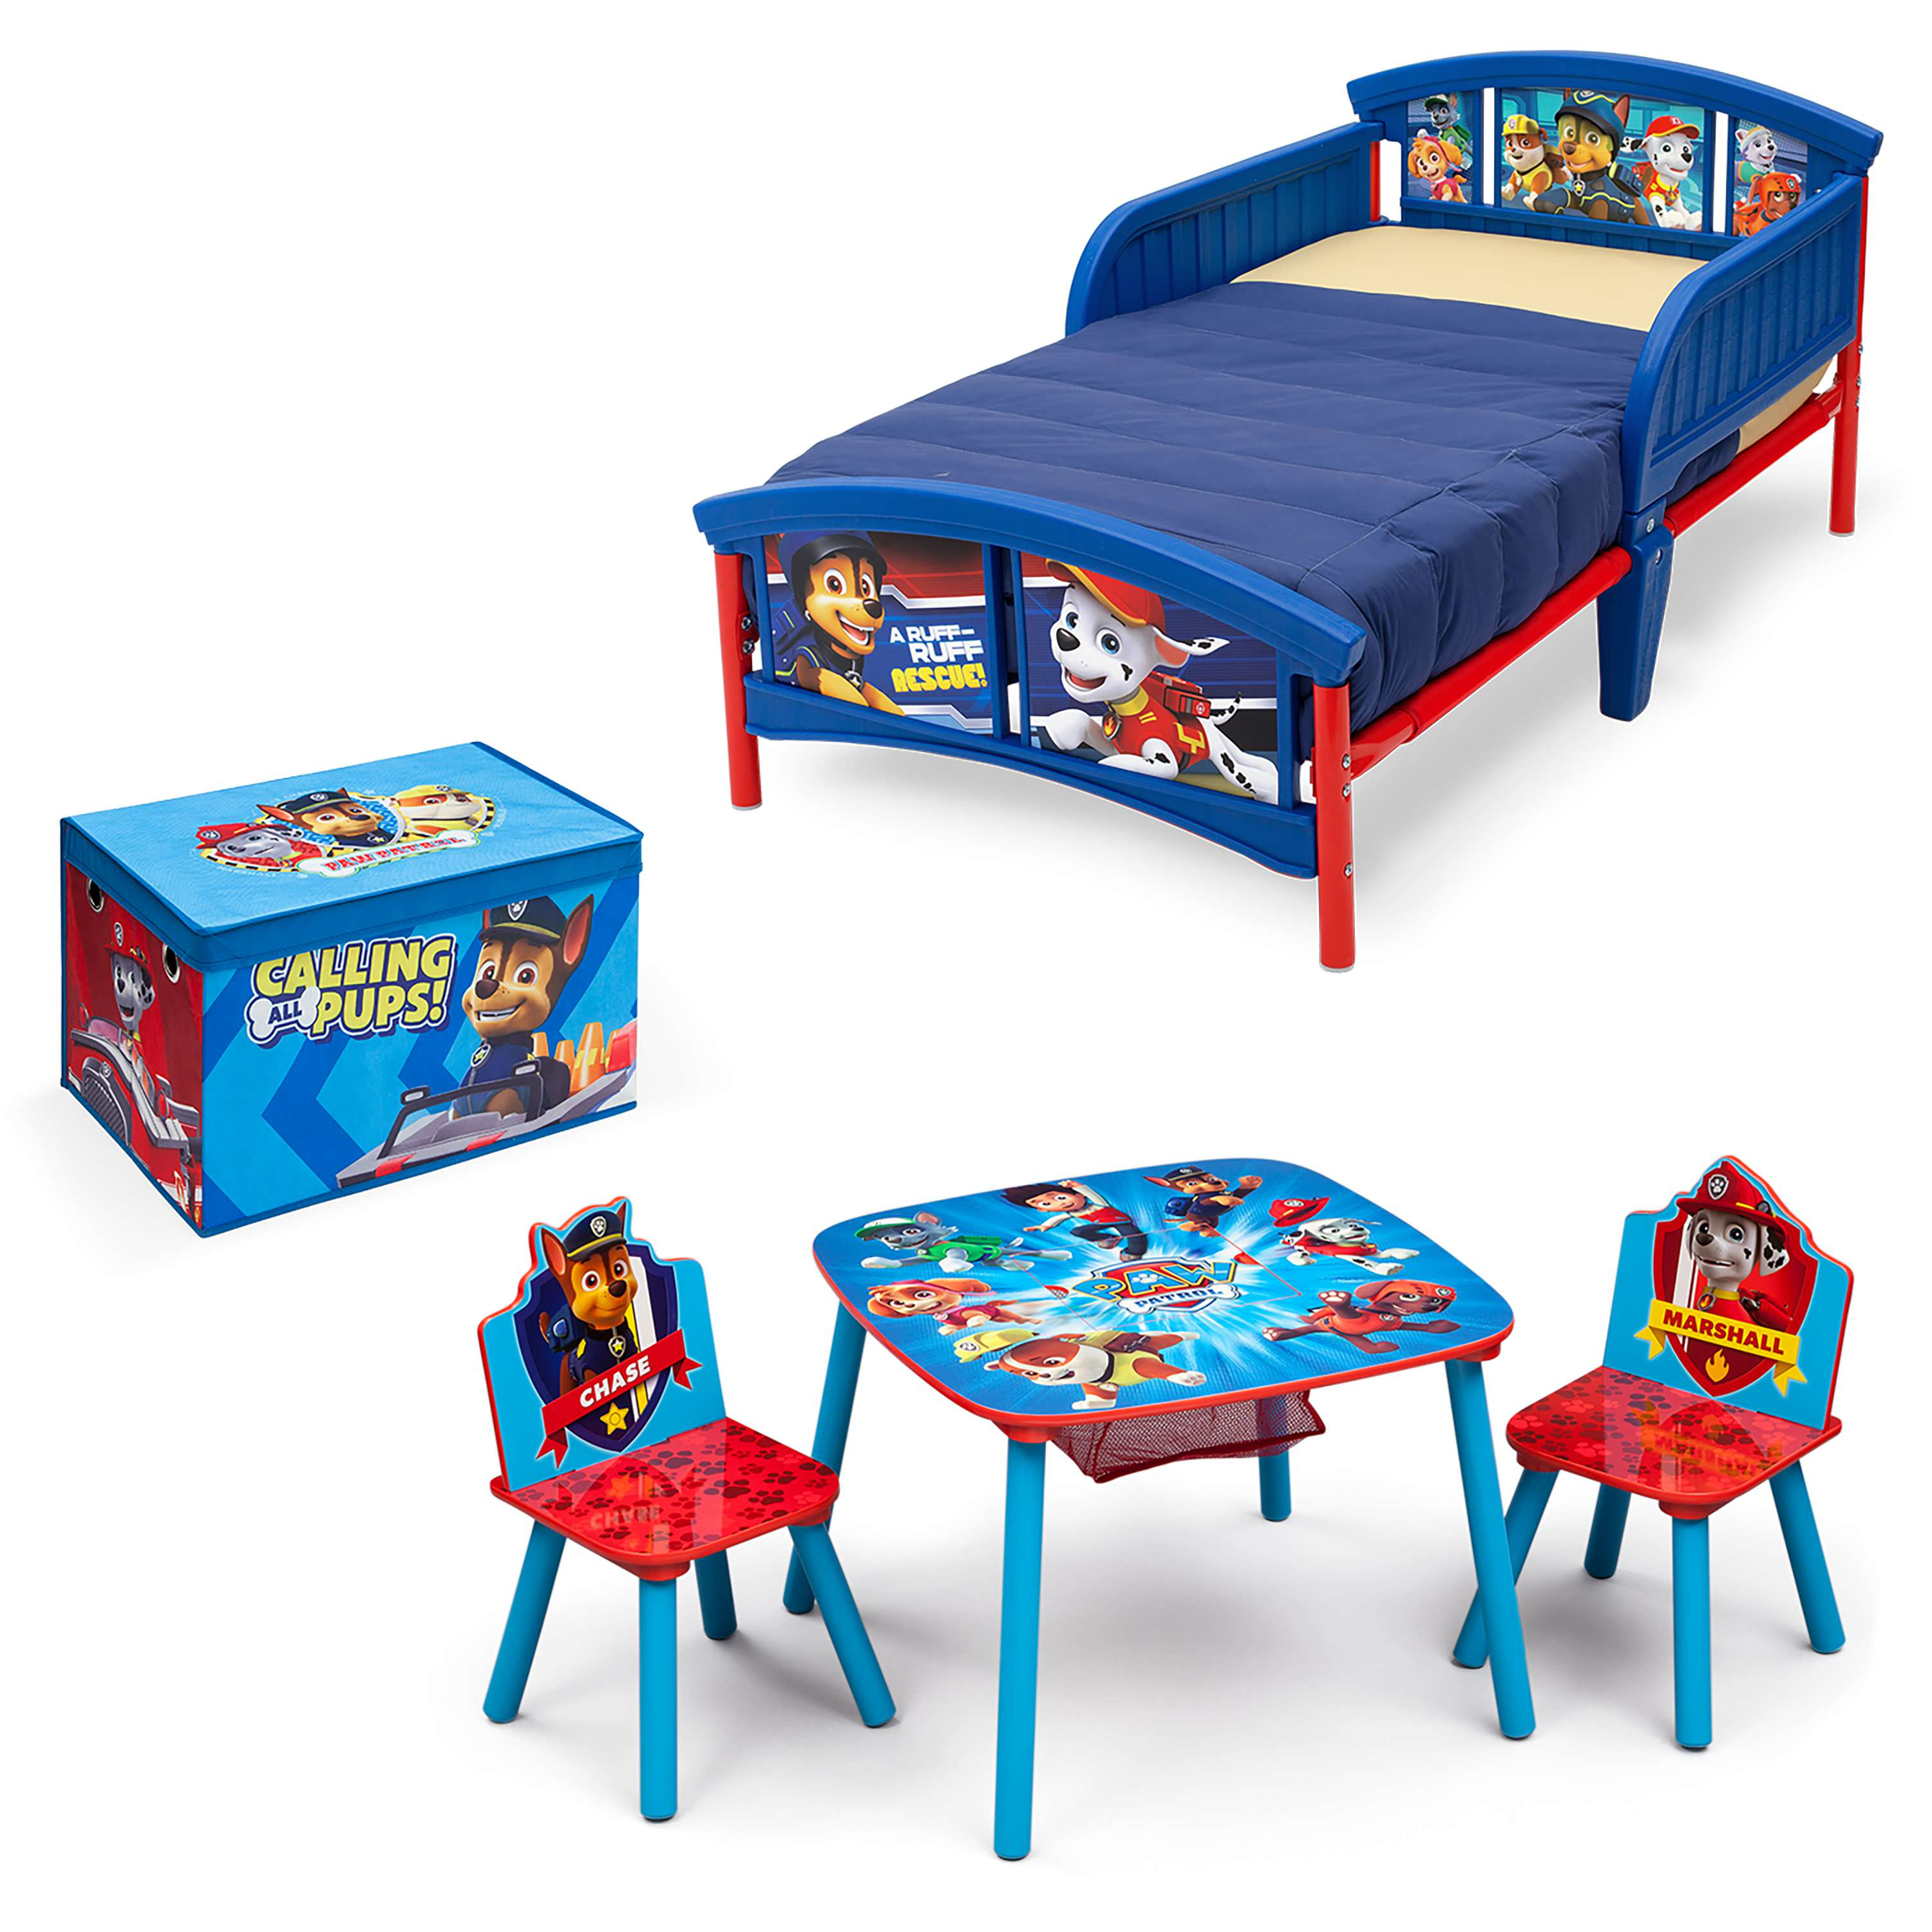 Nick Jr. PAW Patrol Room-in a Box with BONUS Table & Chairs Set